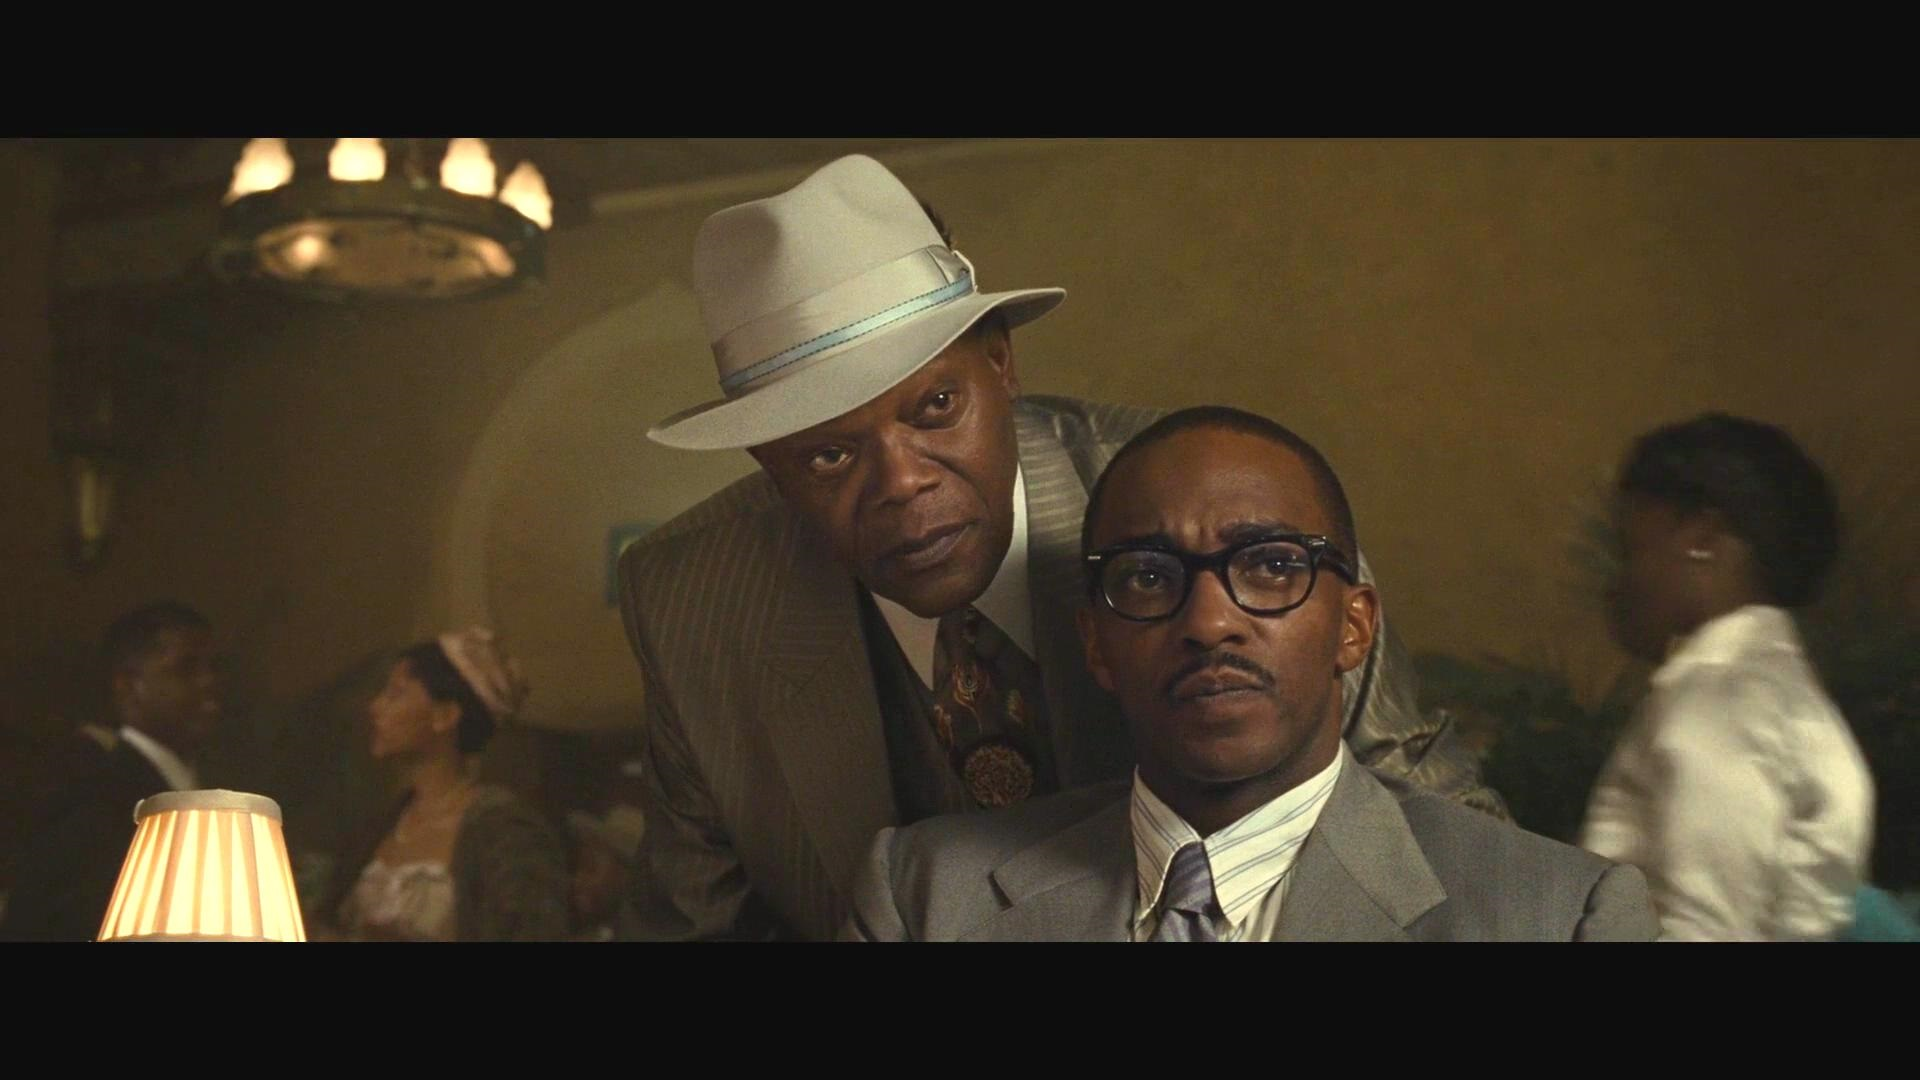 Samuel L. Jackson and Anthony Mackie in The Banker (2020)